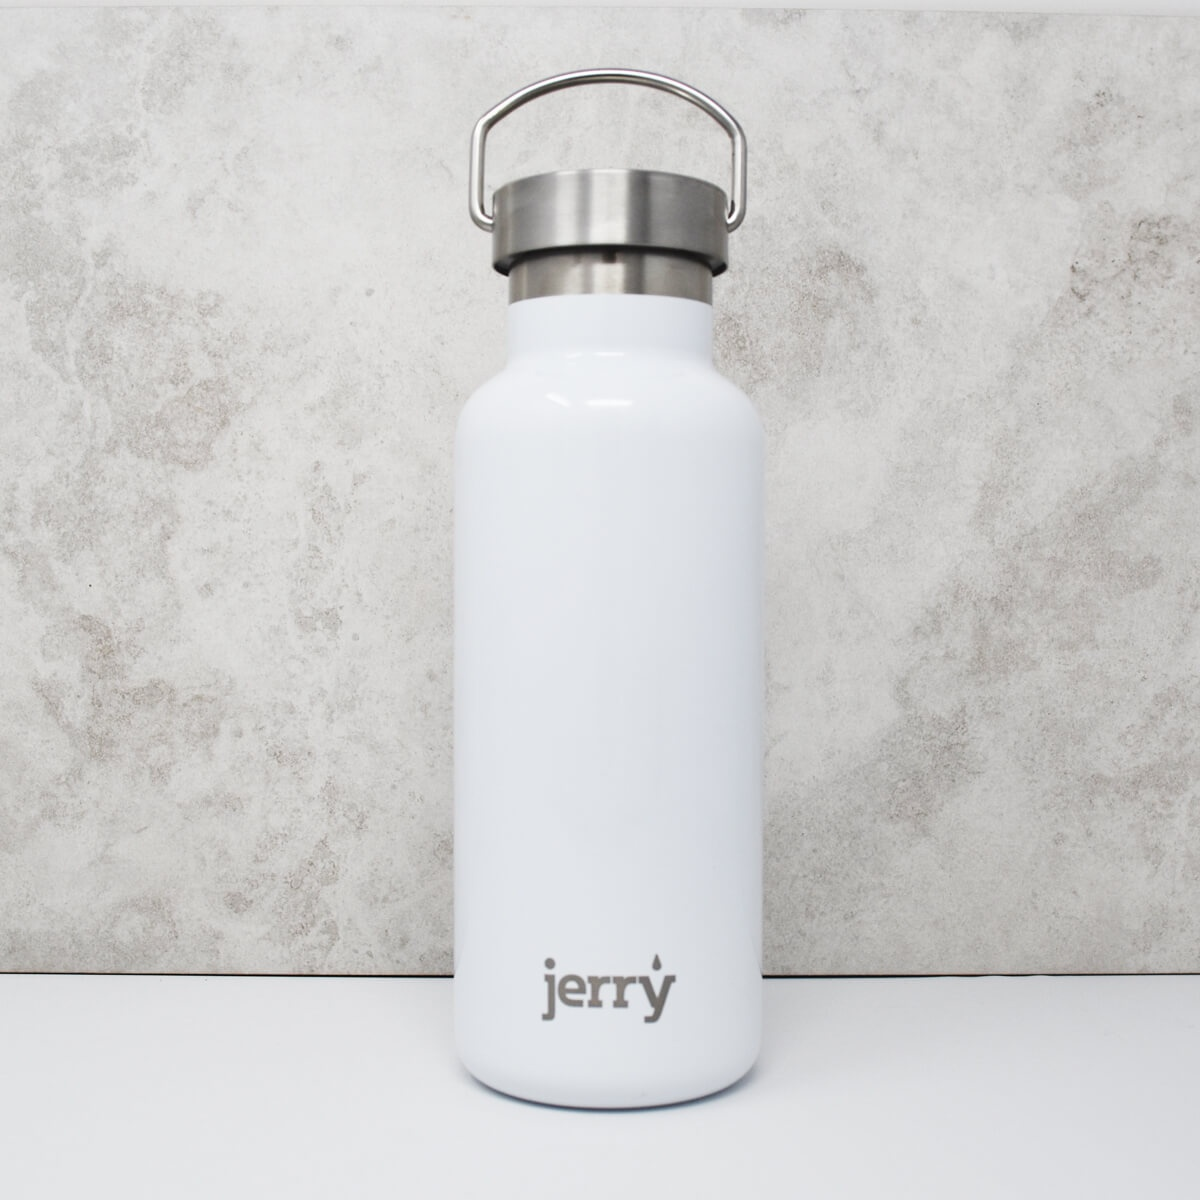 Jerry White Steel Stainless Steel Water Bottle